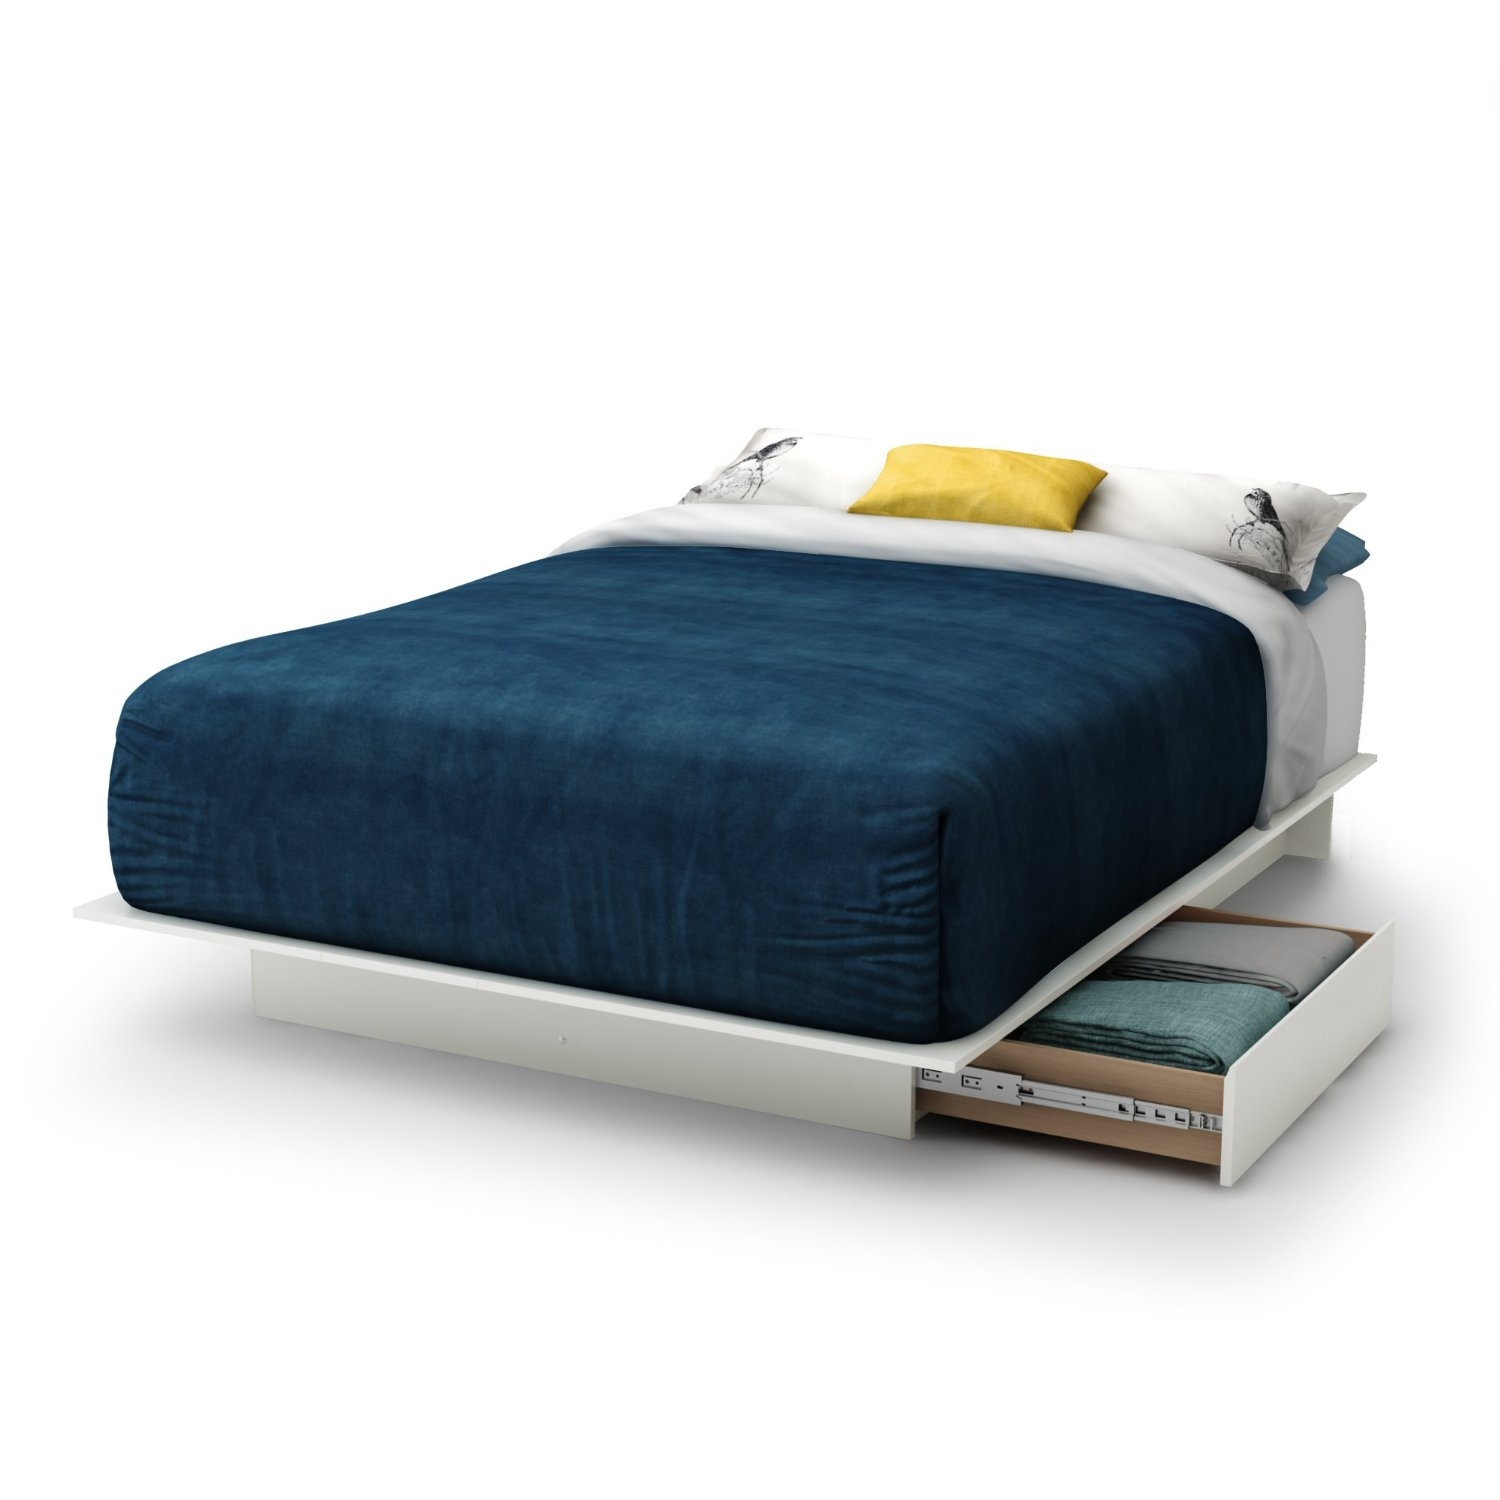 mesmerizing blue duvet queen size platform bed